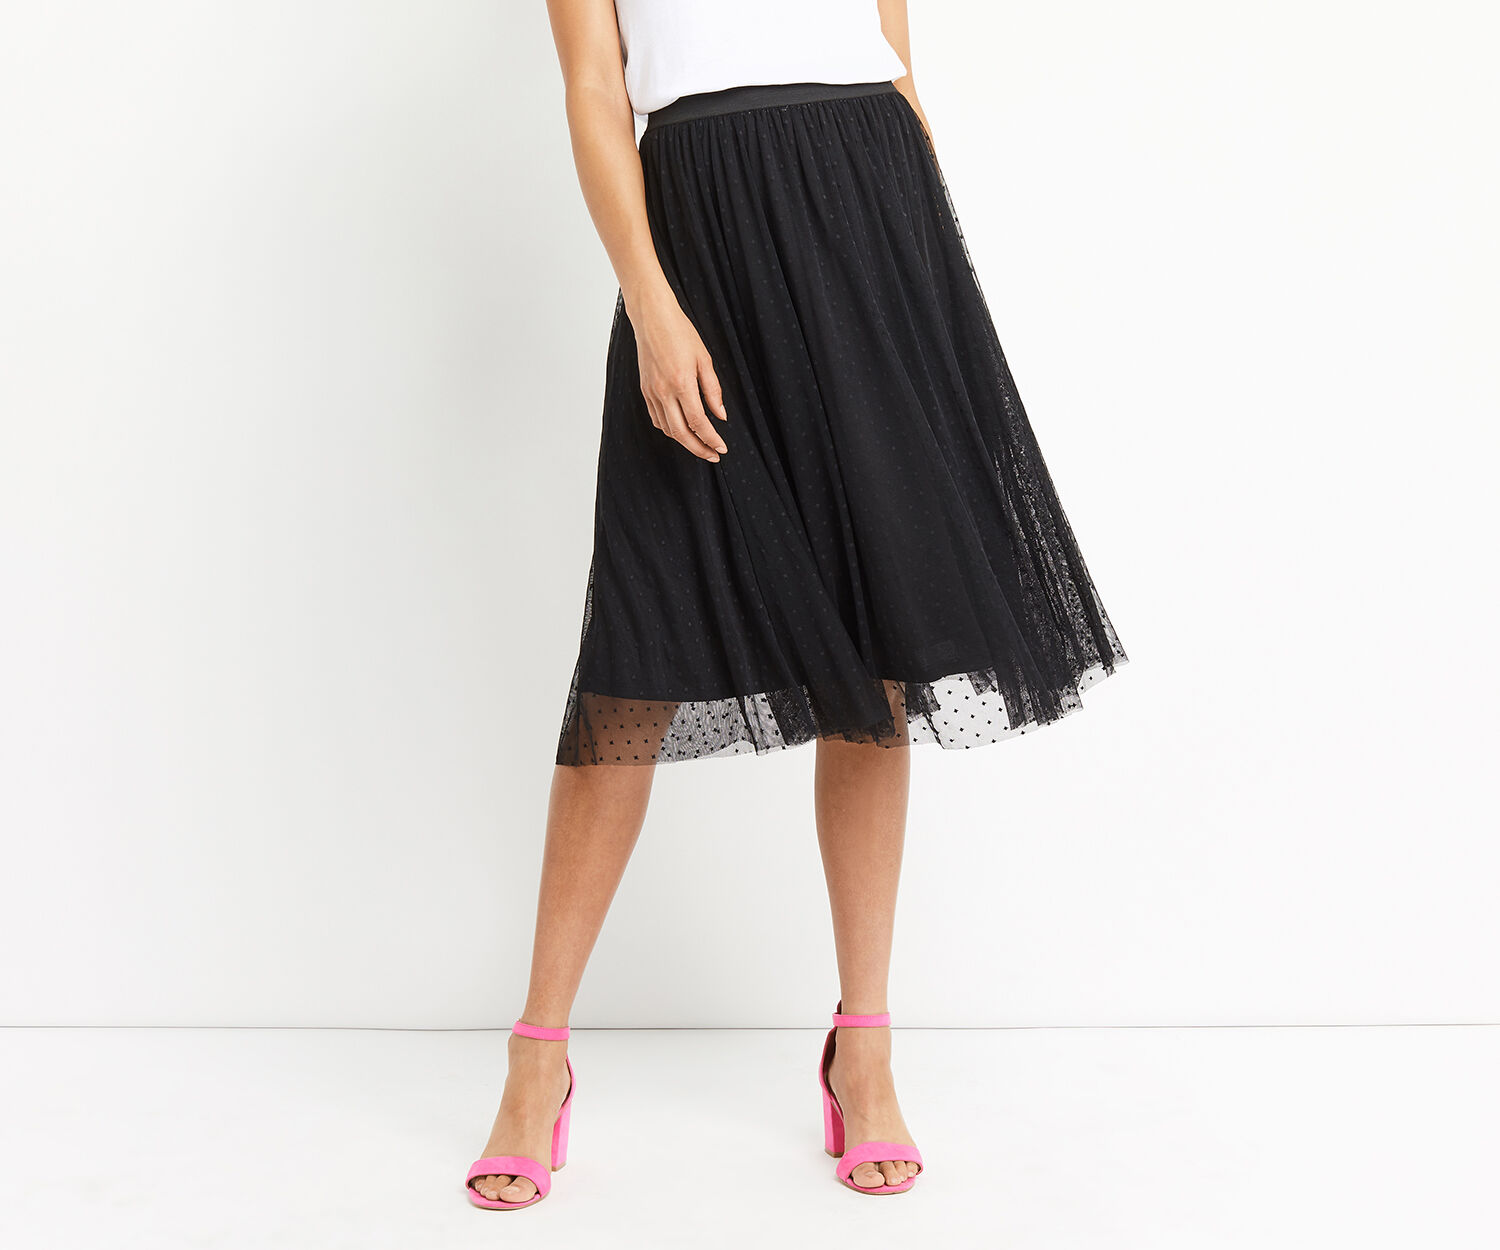 Oasis, SPOT MESH GATHERED SKIRT Black 1